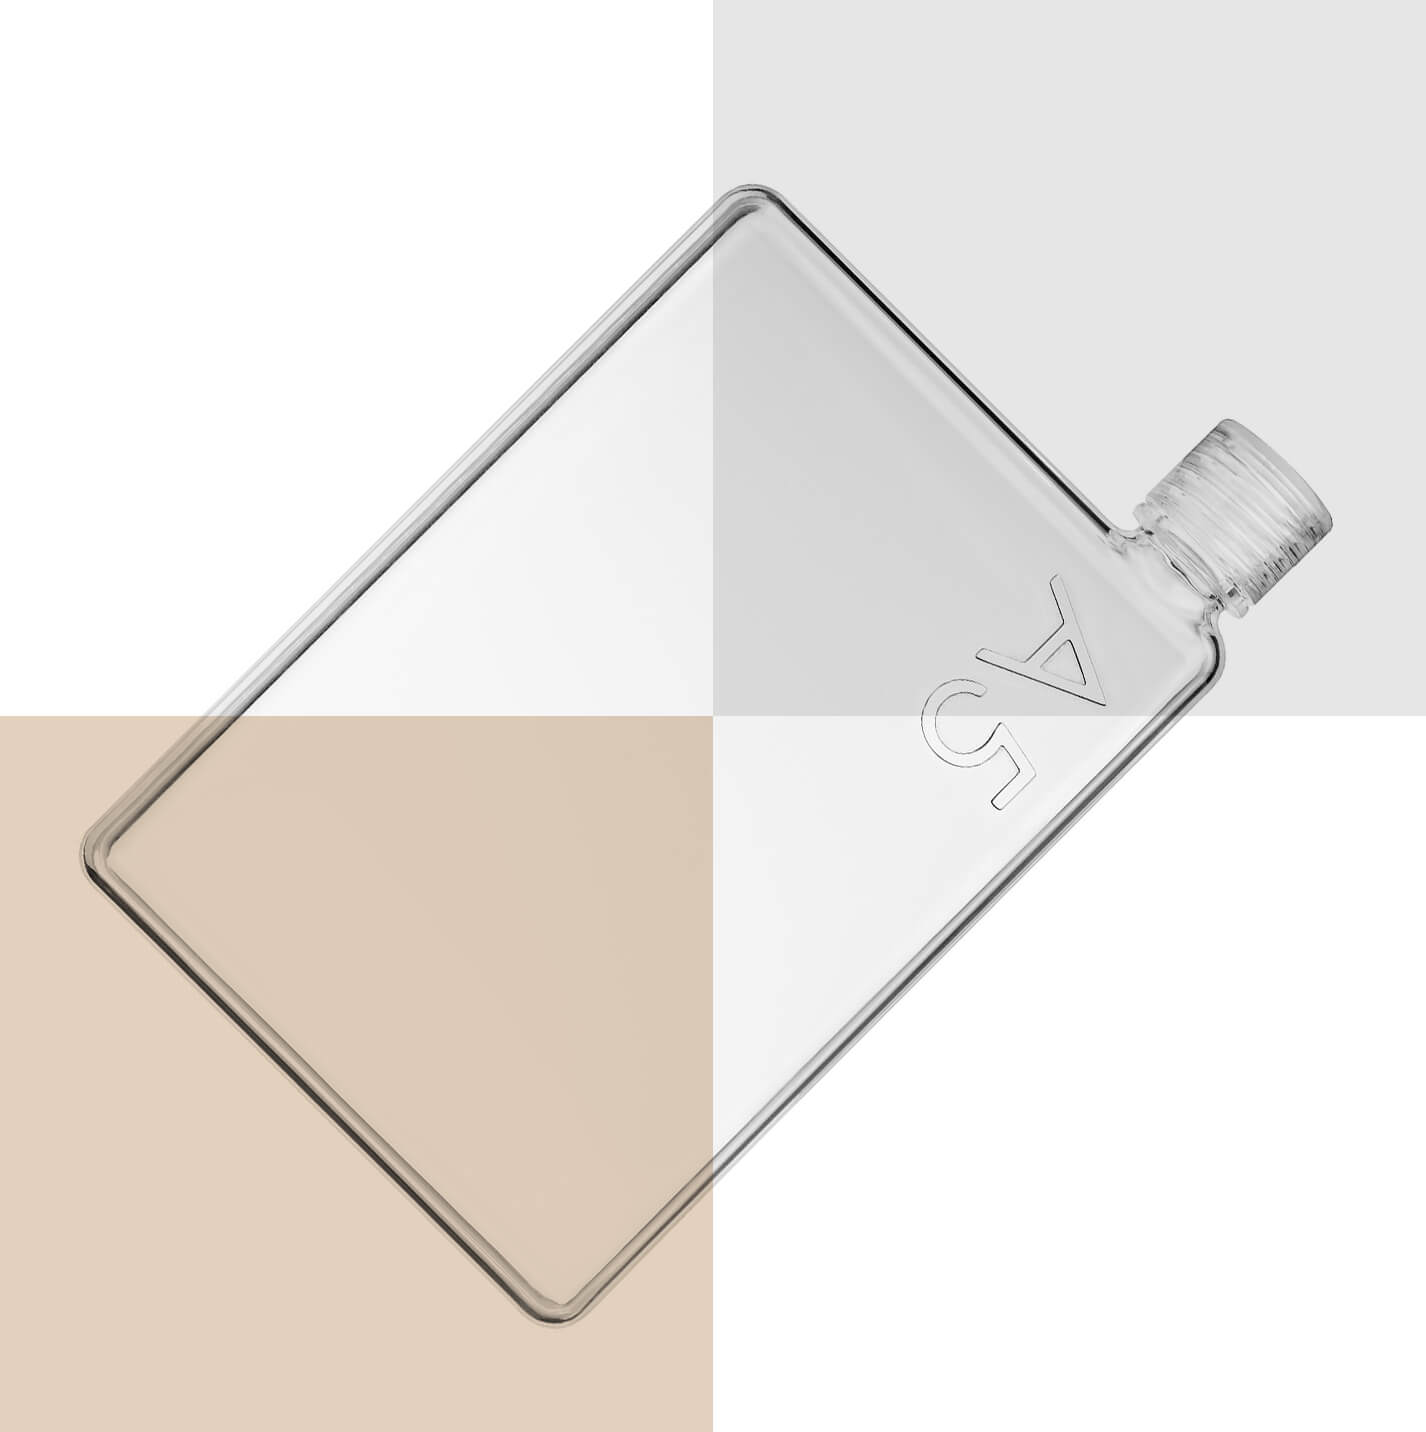 Memobottle design